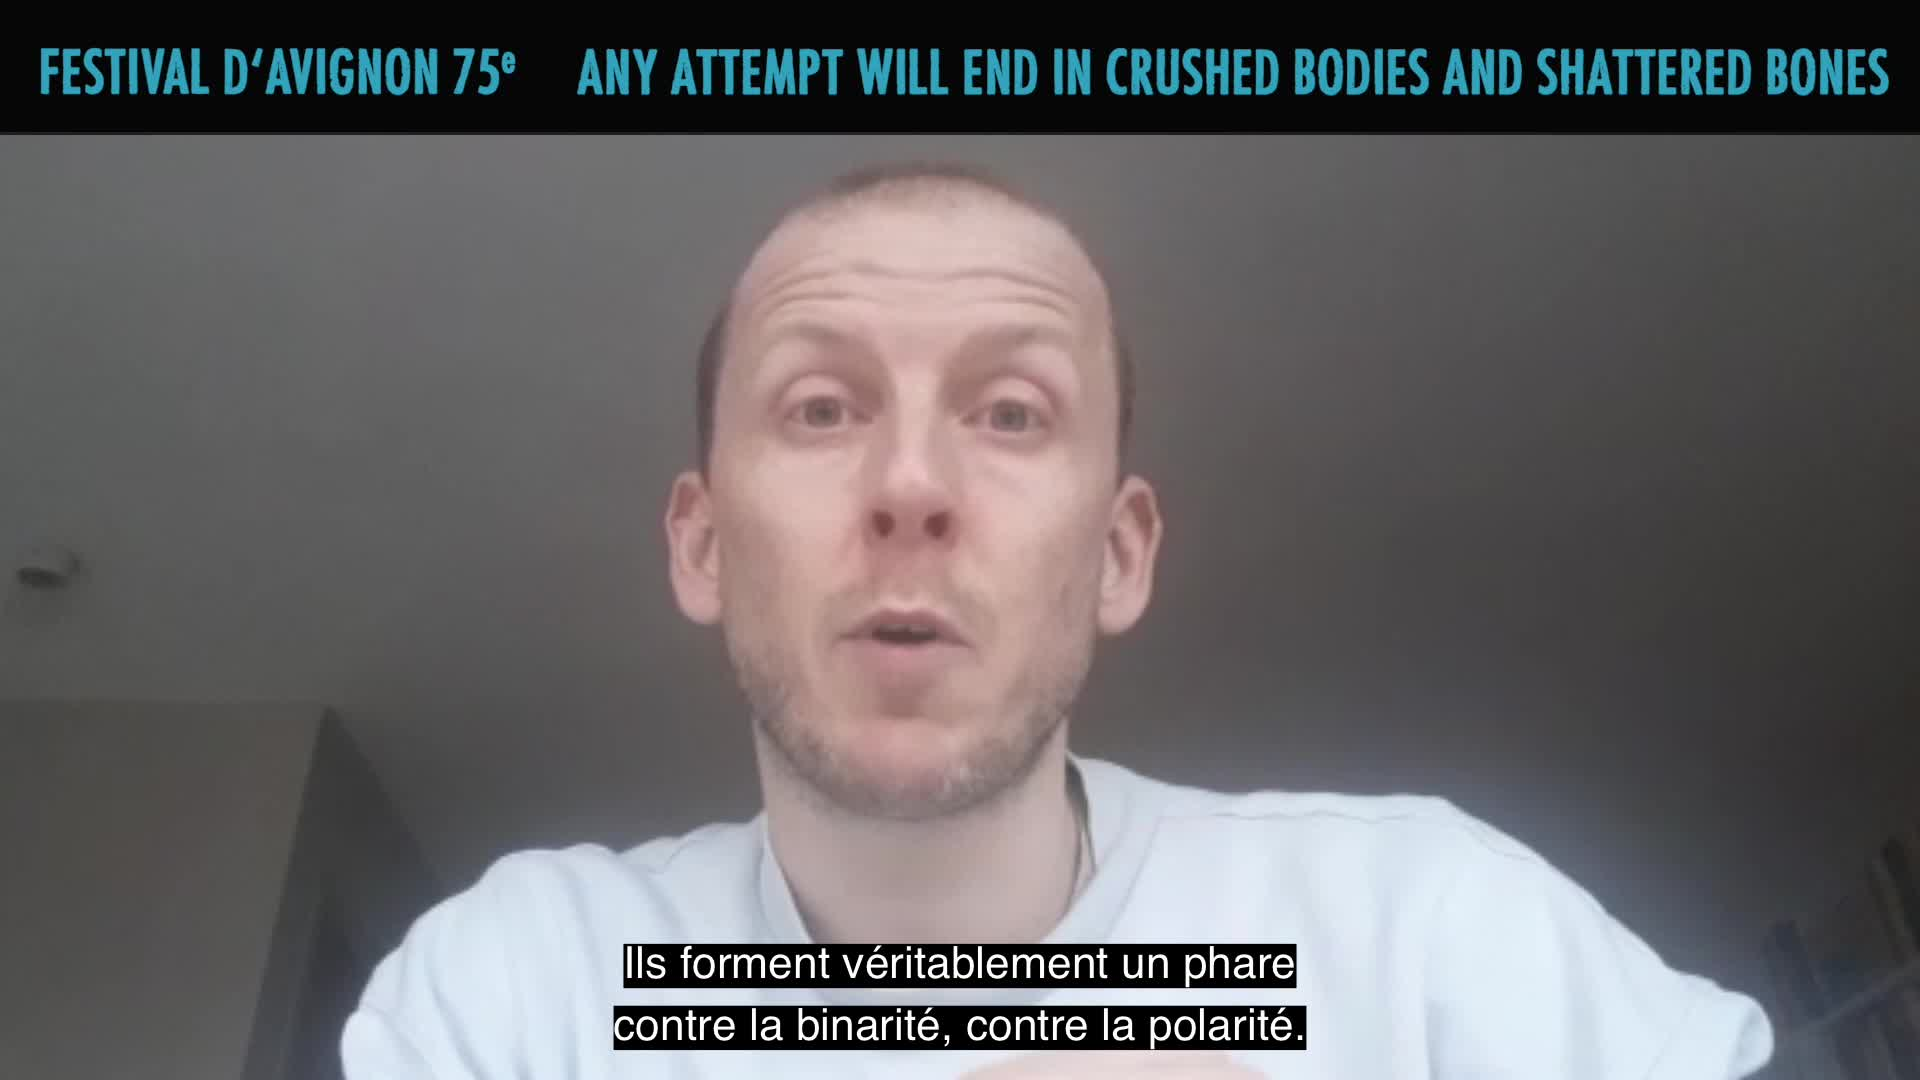 """Vidéo Jan Martens présente """"Any attempt will end in crushed bodies and shattered bones"""""""